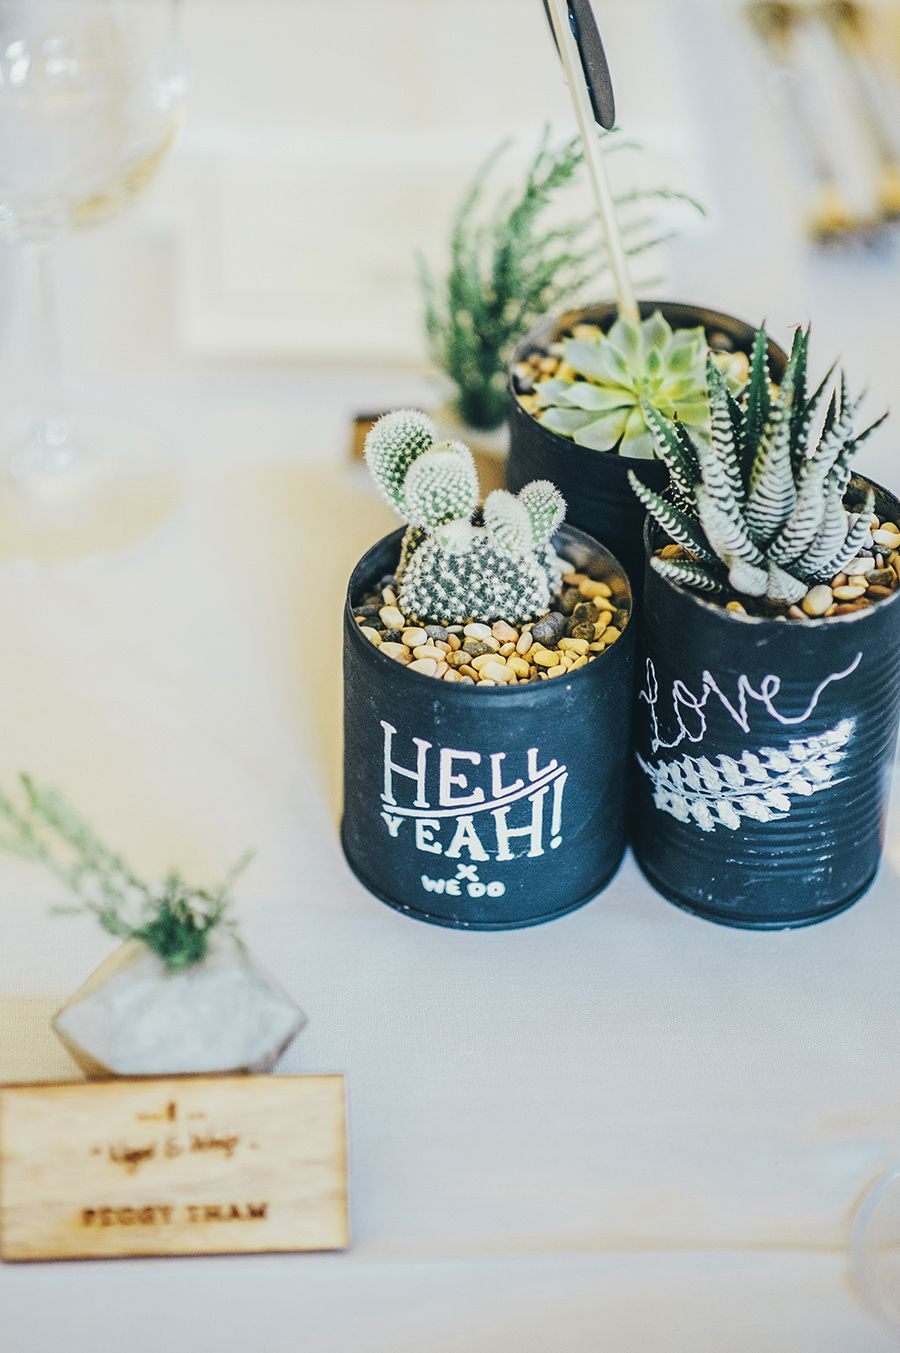 Diy succulent wedding favors that add to the rustic wedding theme